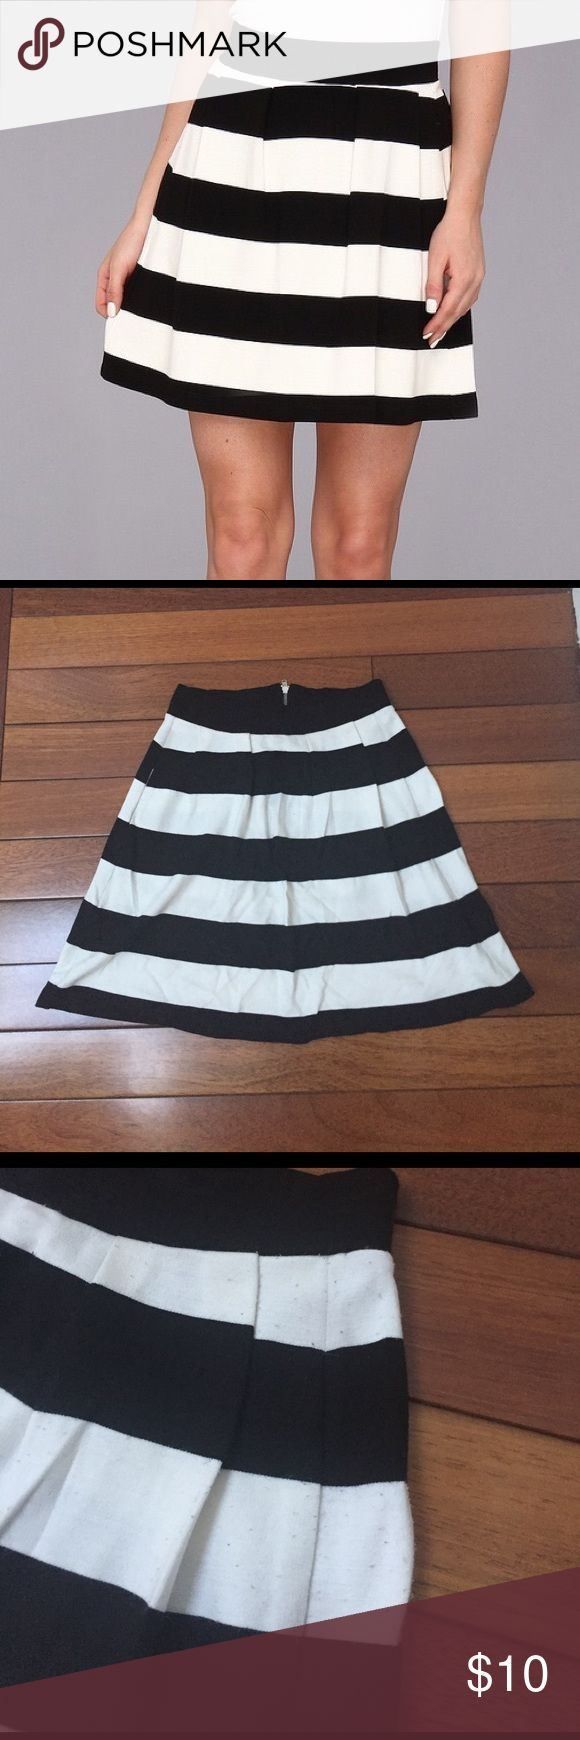 French Connection Striped Skirt Sz US2/UK6 French Connection Striped Skirt Sz US2/UK6. Pilling throughout. Black and white stripes. French Connection Skirts Mini